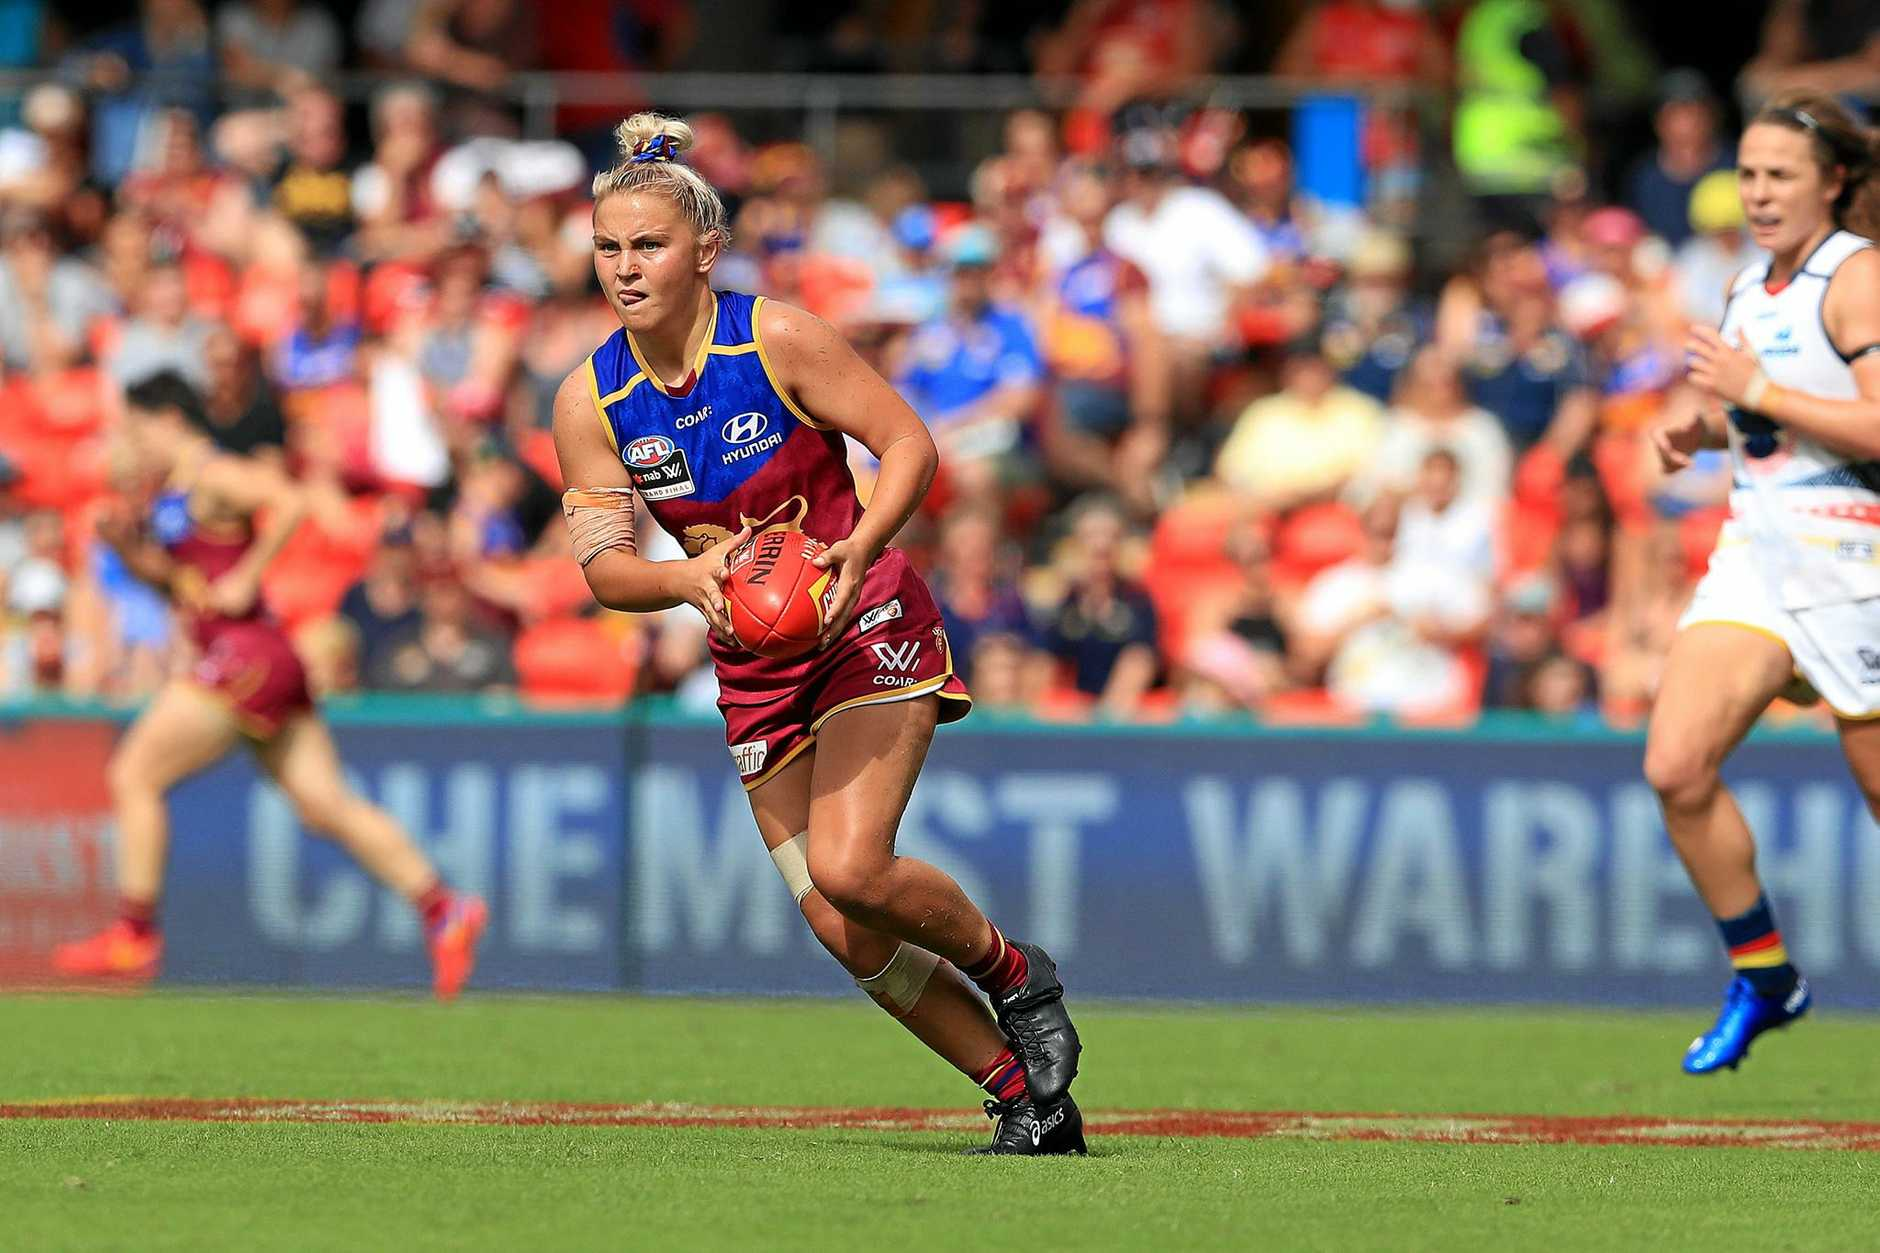 Megan Hunt looks for a teammate during the AFLW Grand Final between the Brisbane Lions and Adelaide Crows at Metricon Stadium on the Gold Coast.